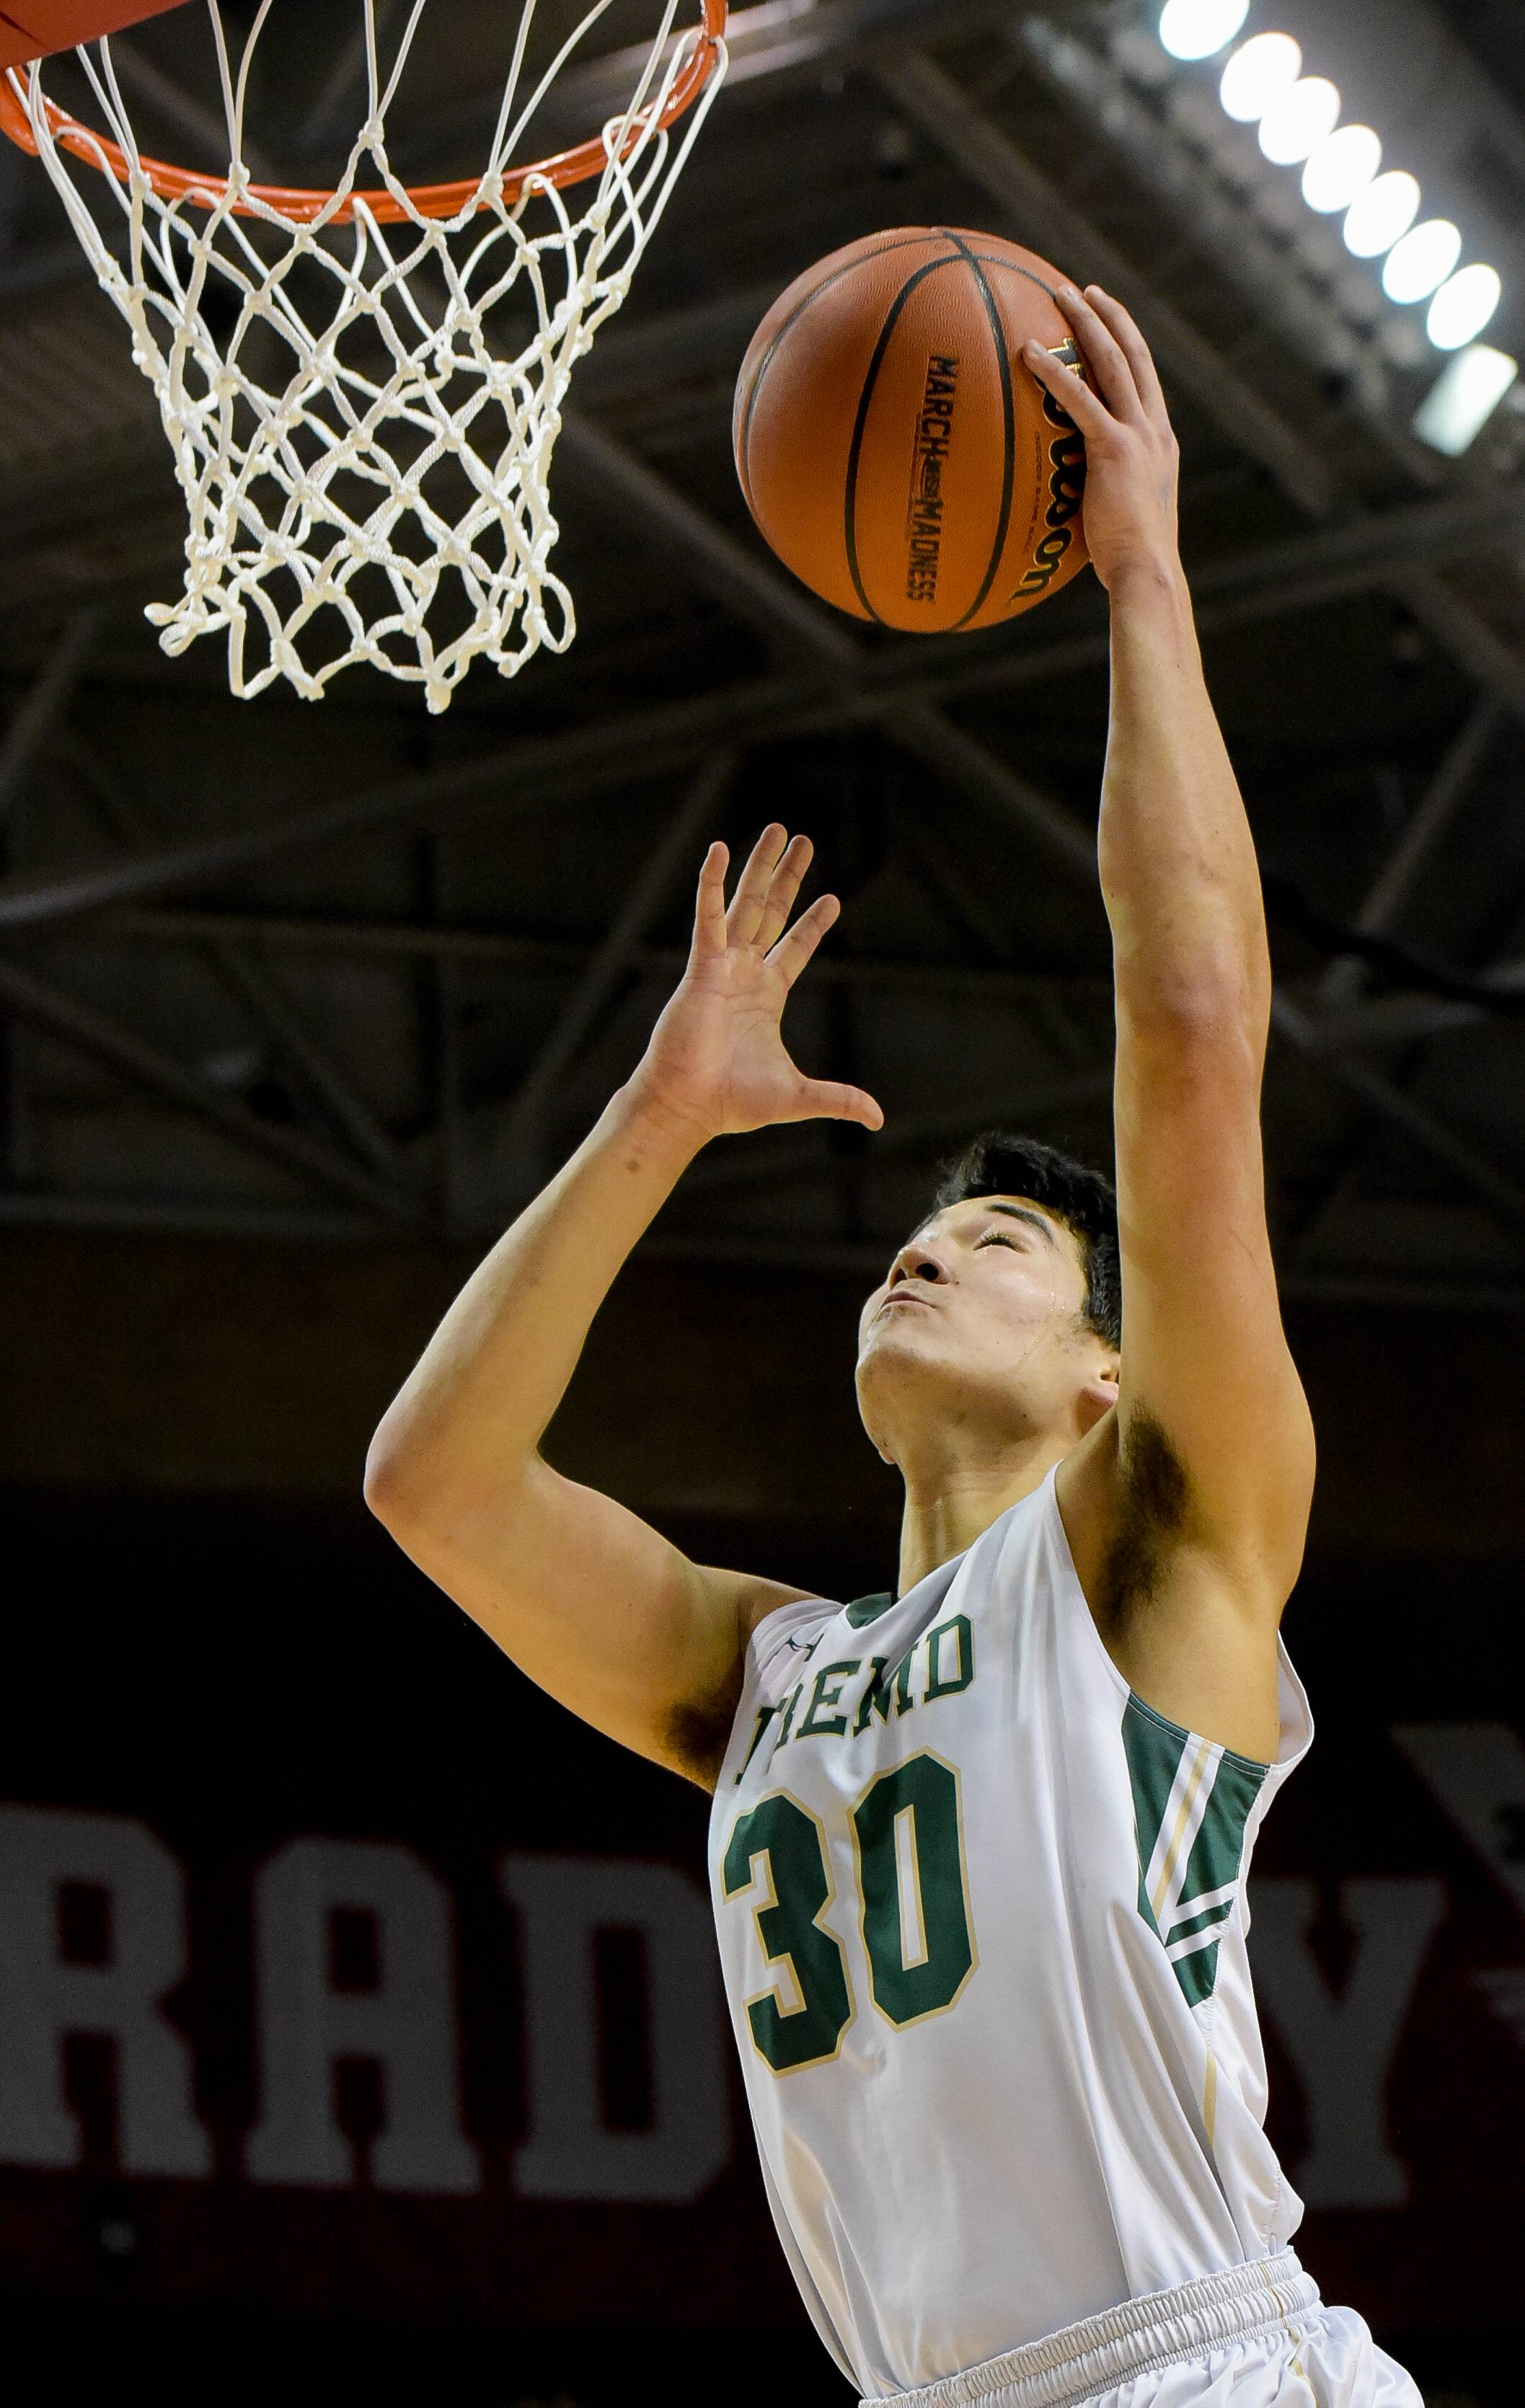 Fremd's Ryan Martin makes a layup during the Class 4A third-place game Saturday in Peoria.